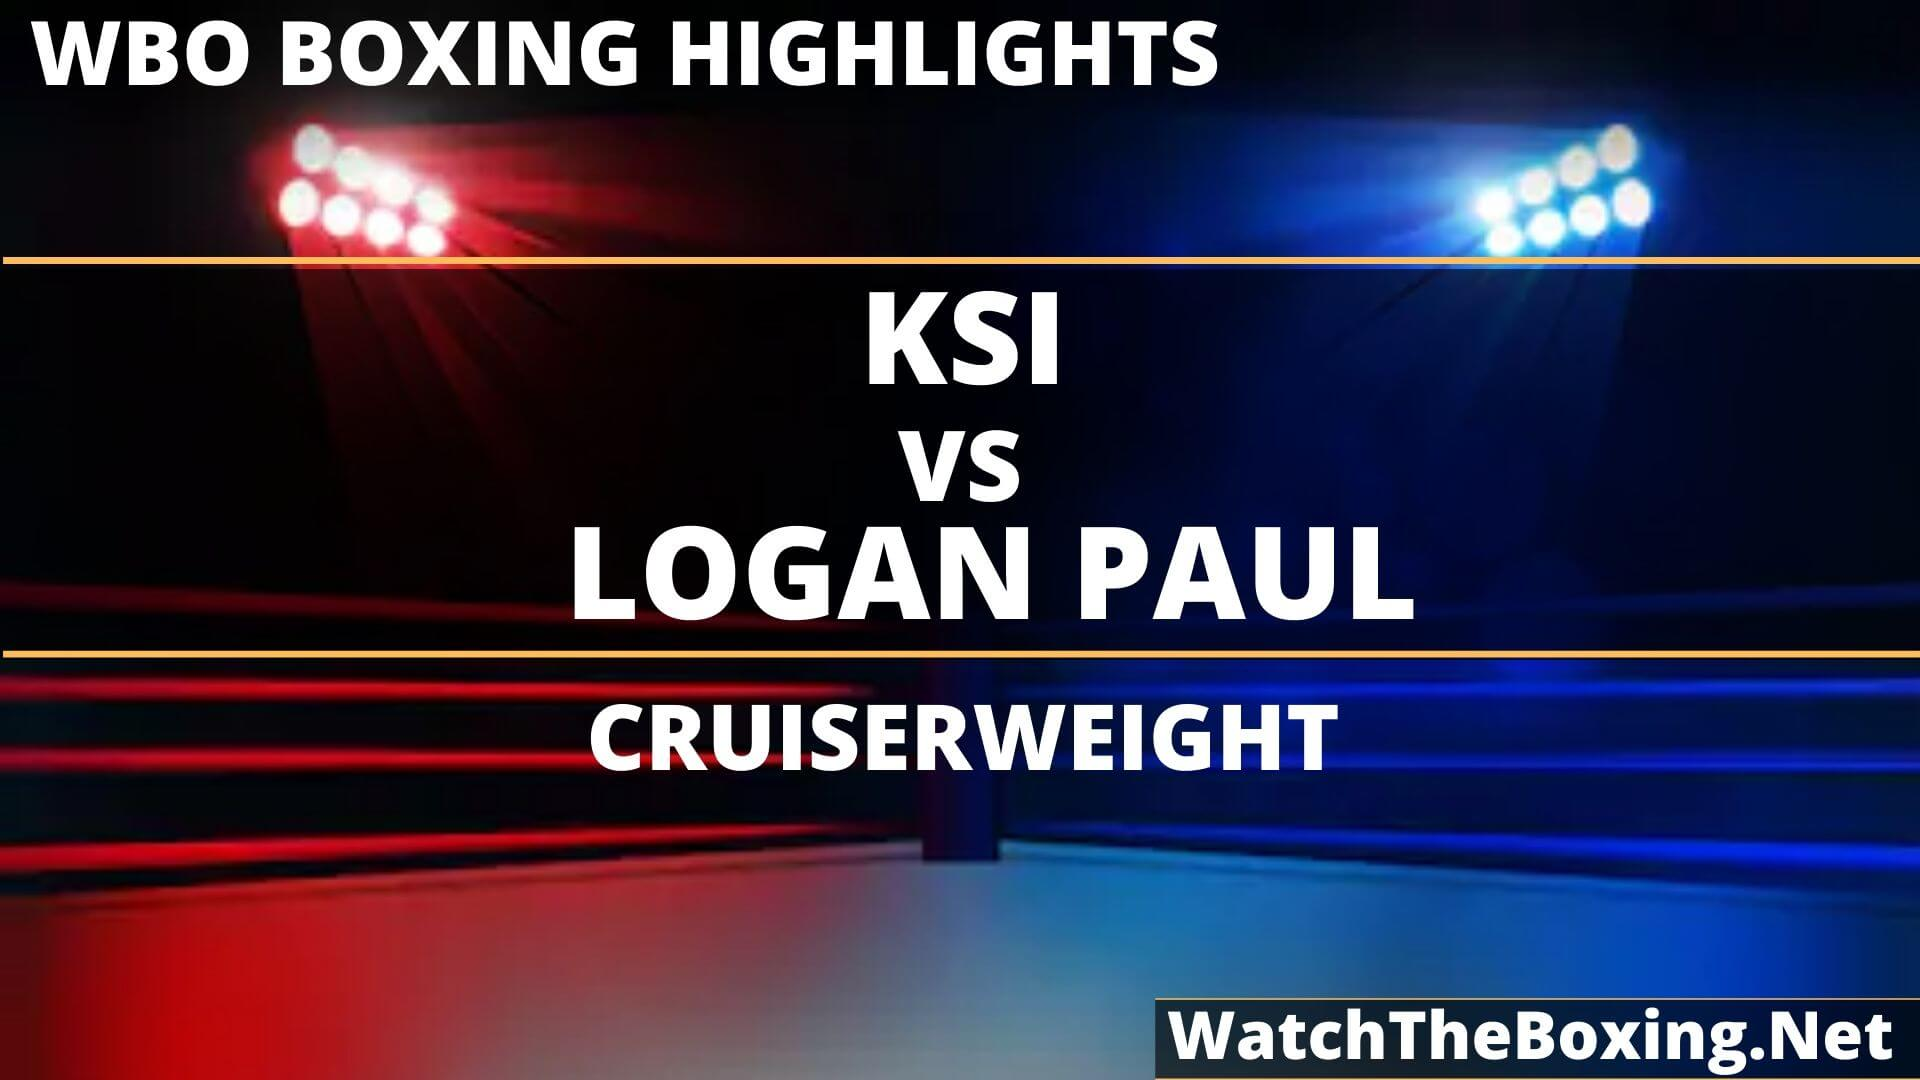 KSI Vs Logan Paul Highlights 2019